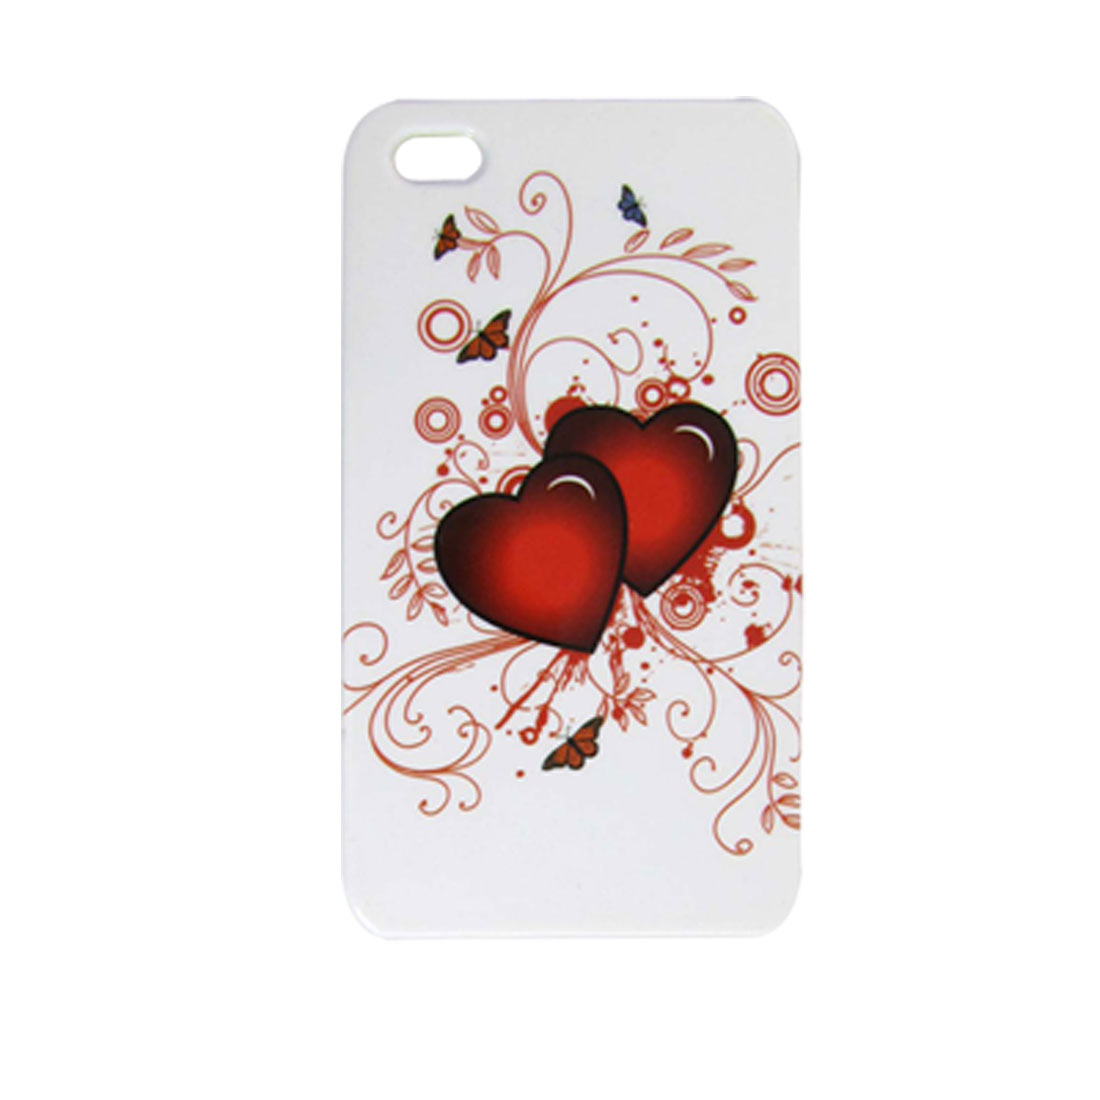 Dark Red Double Heart Hard Plastic Back Case for iPhone 4 4G